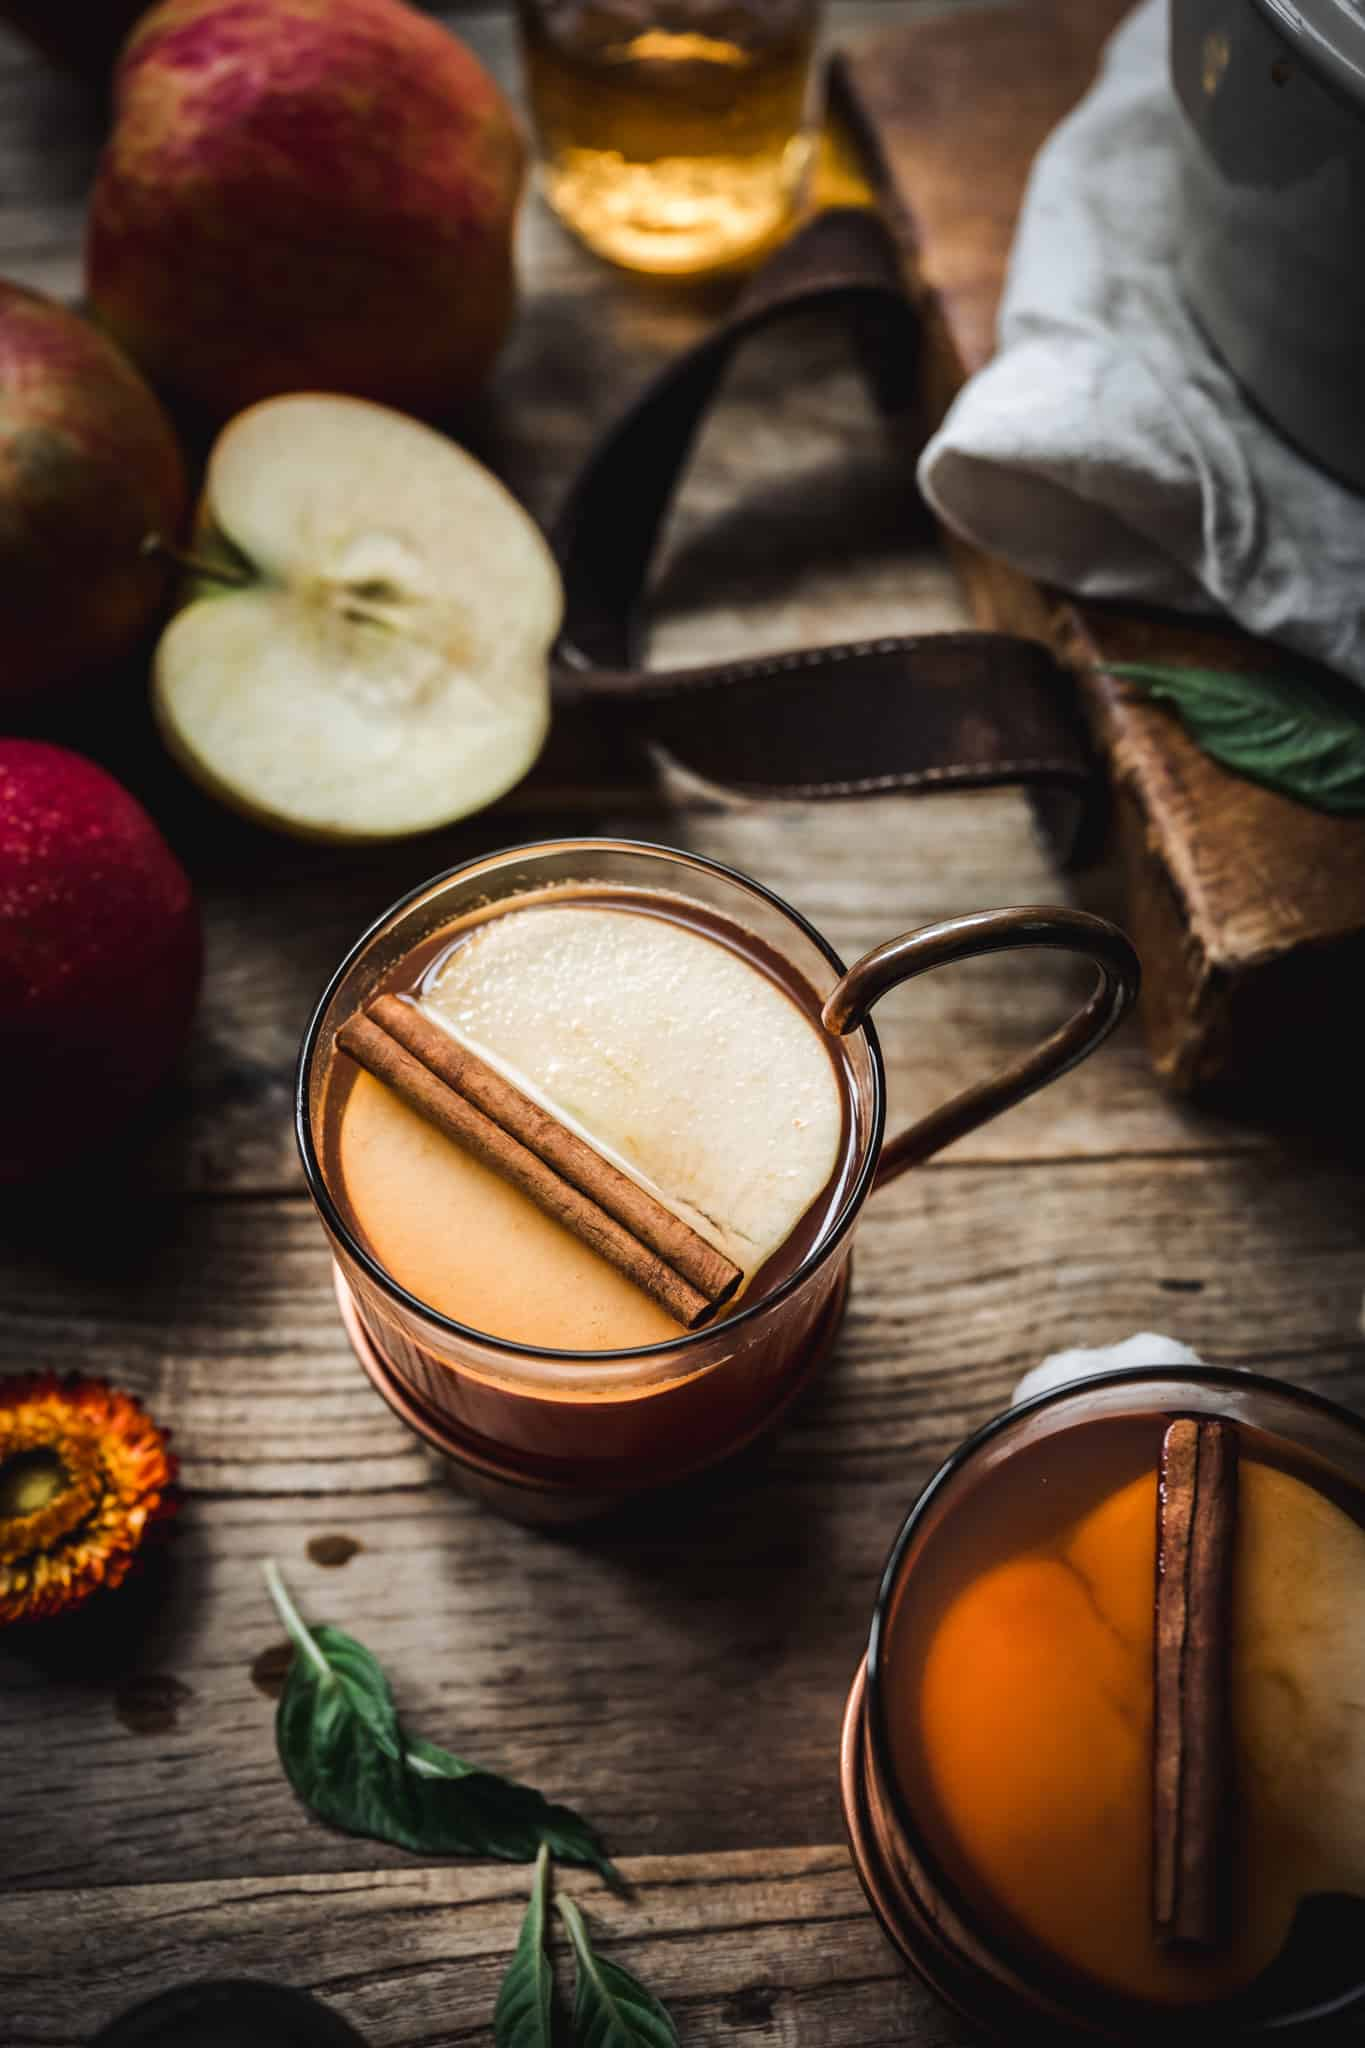 Overhead view of hot apple cider cocktail garnished with cinnamon stick on rustic wood background